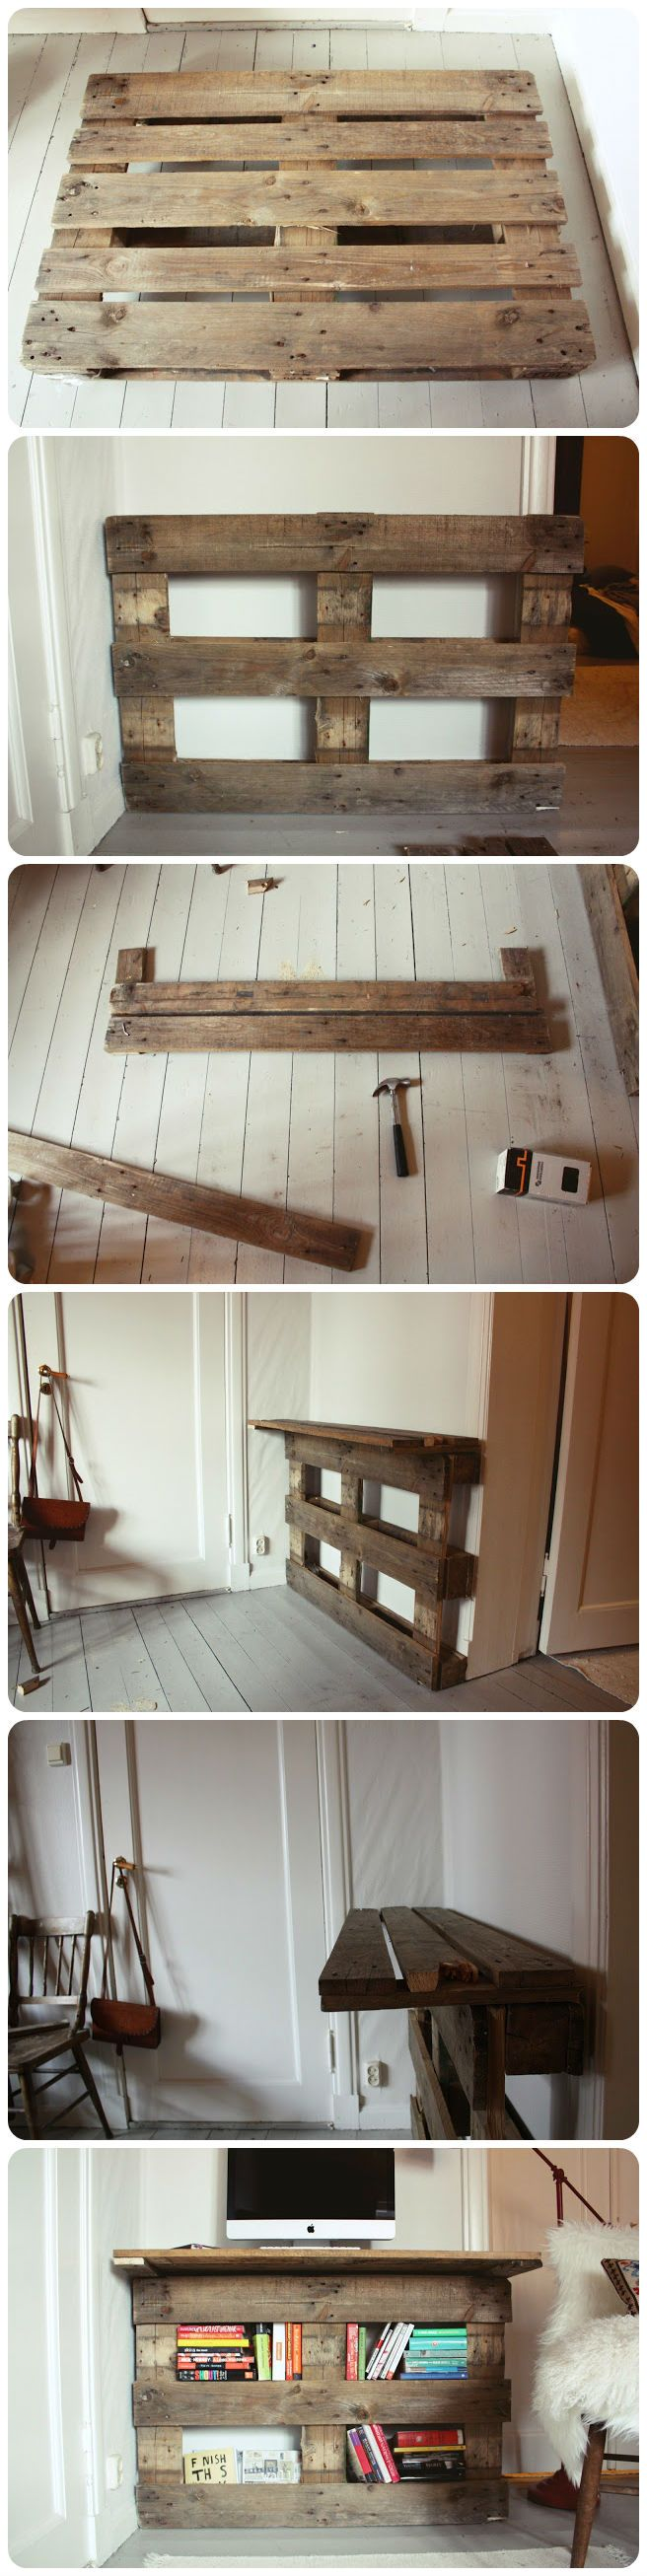 Pallet desk DIY tutorial I would put legs at the bottom and a henged top to fold out to make it twice as wide if wanted